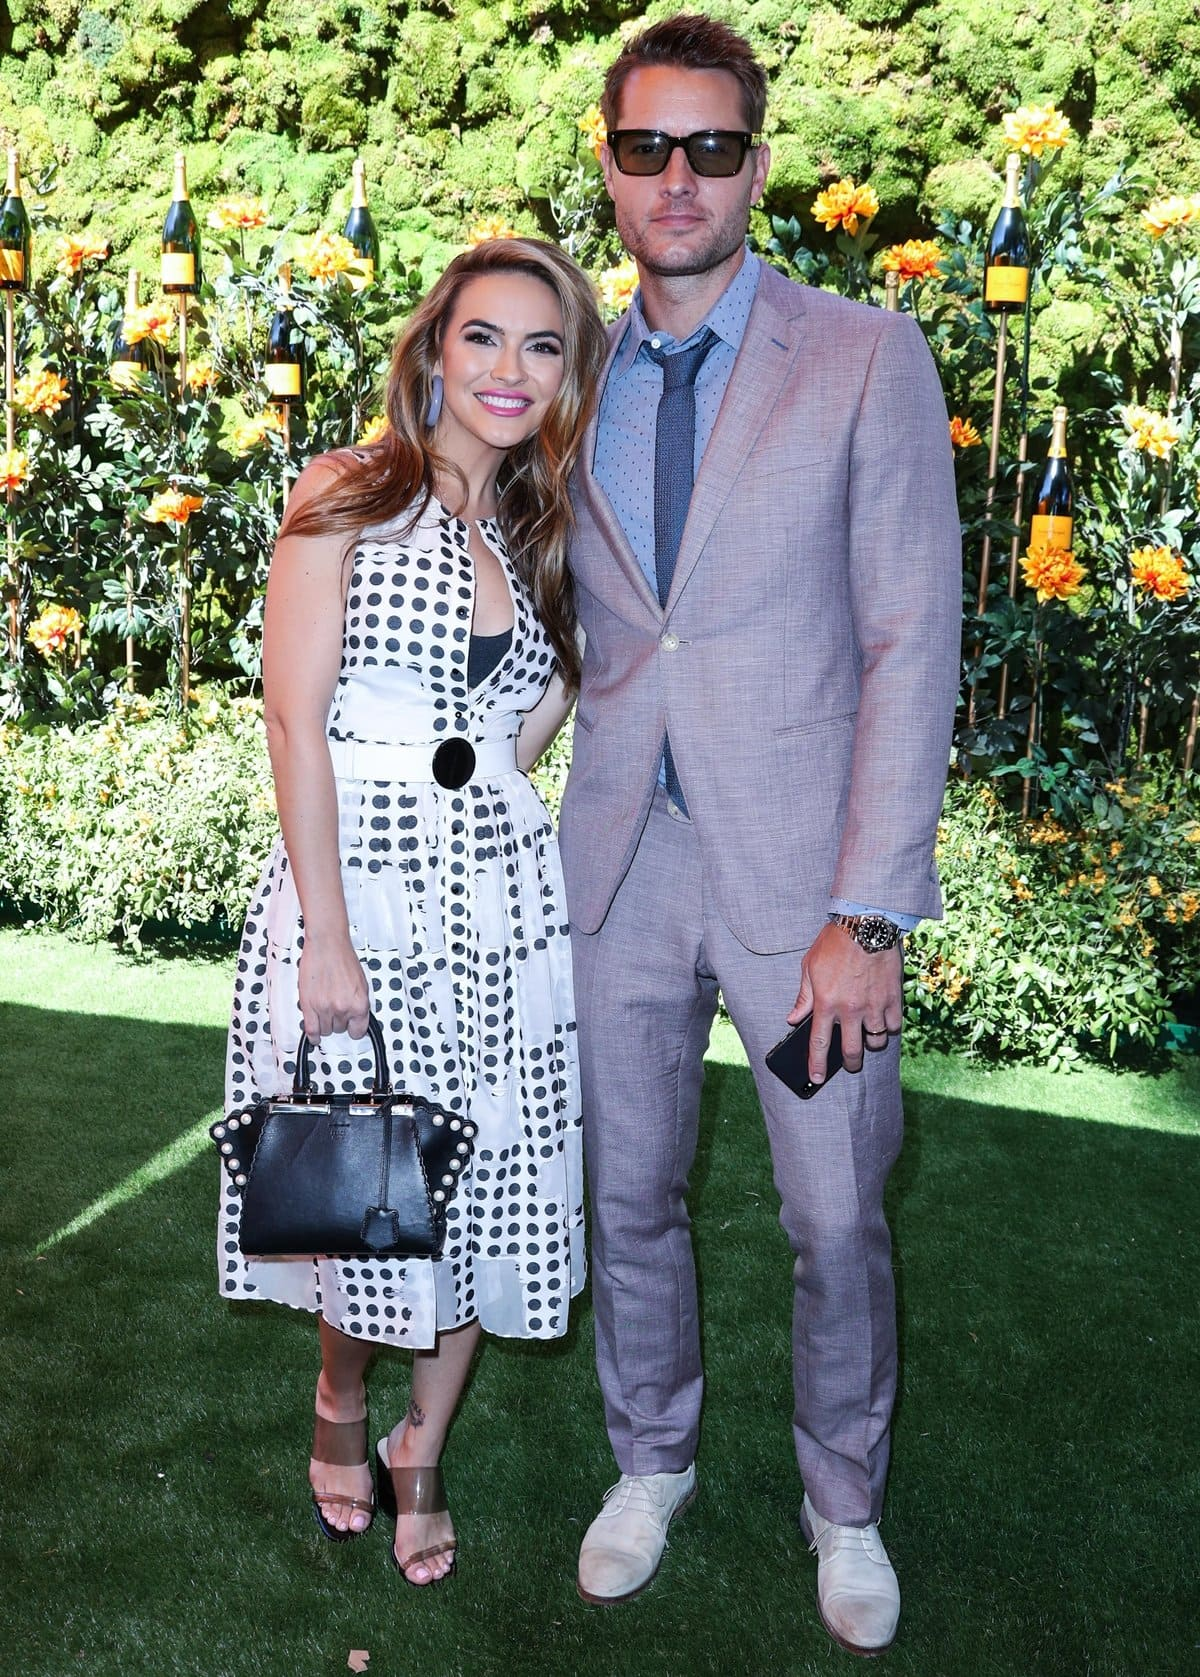 Justin Hartley filed for divorce from Chrishell Stause in November 2019 after two years of marriage